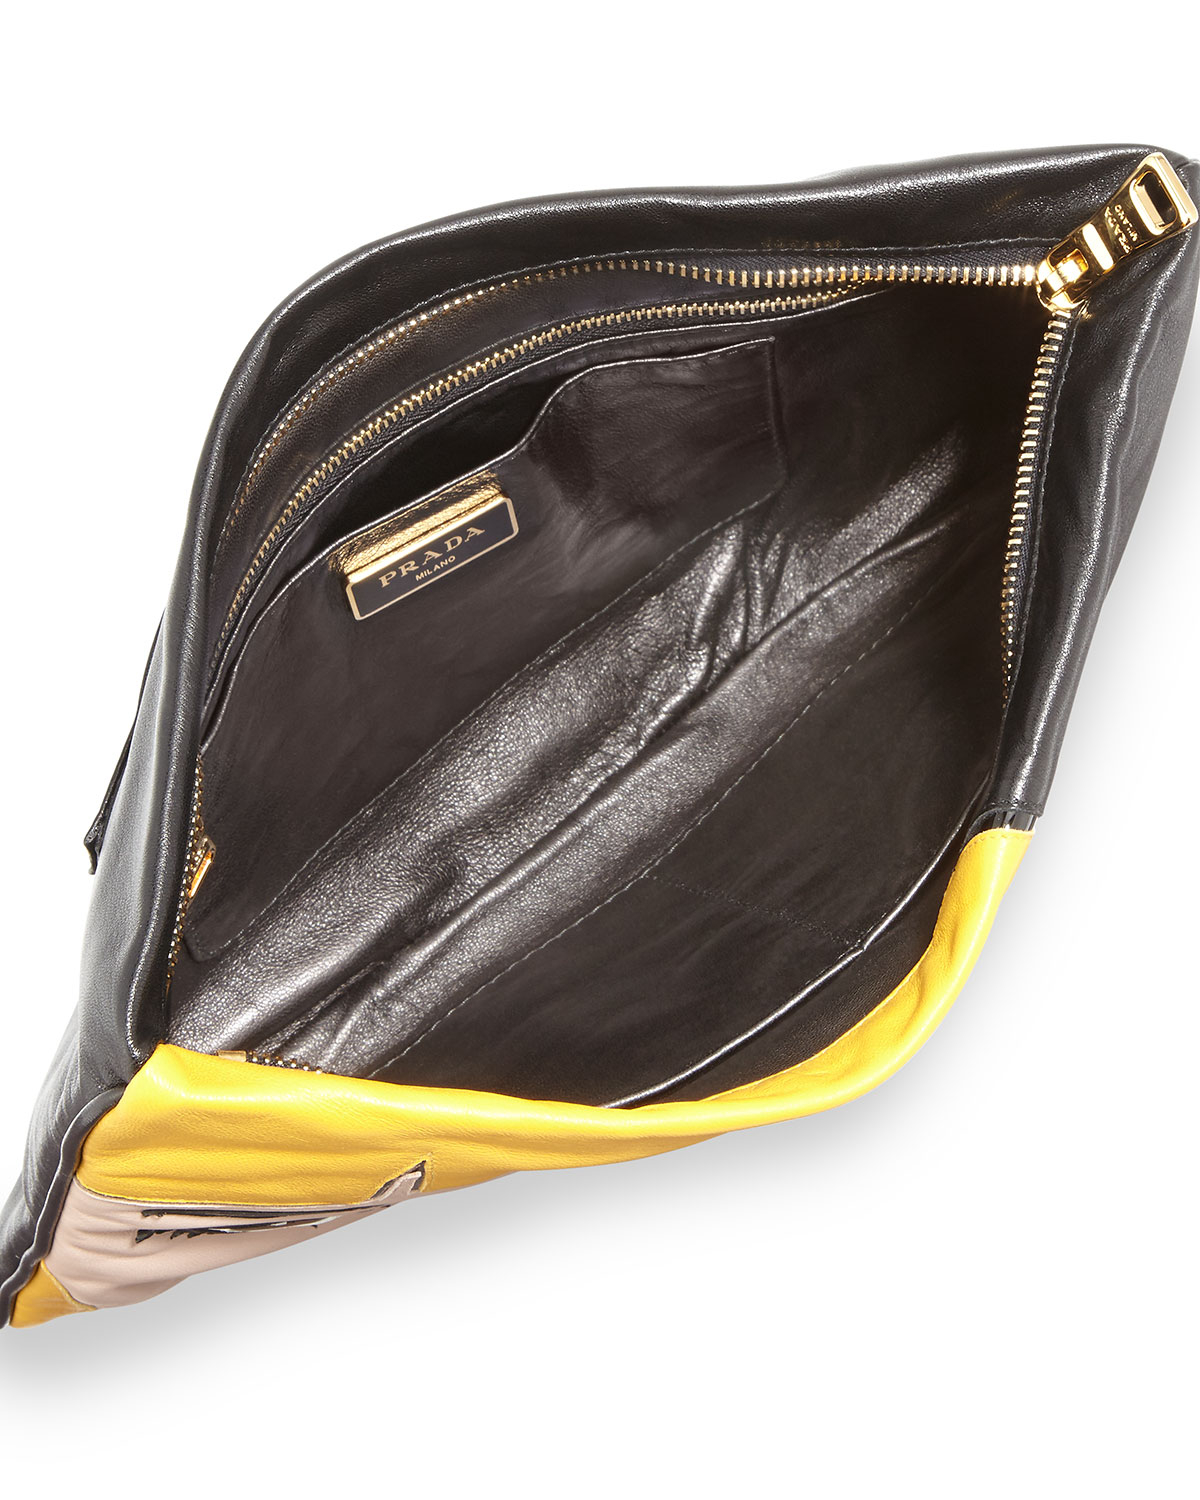 Prada Napa Zip Girl Clutch Bag in Yellow (BLACK(NERO)) | Lyst